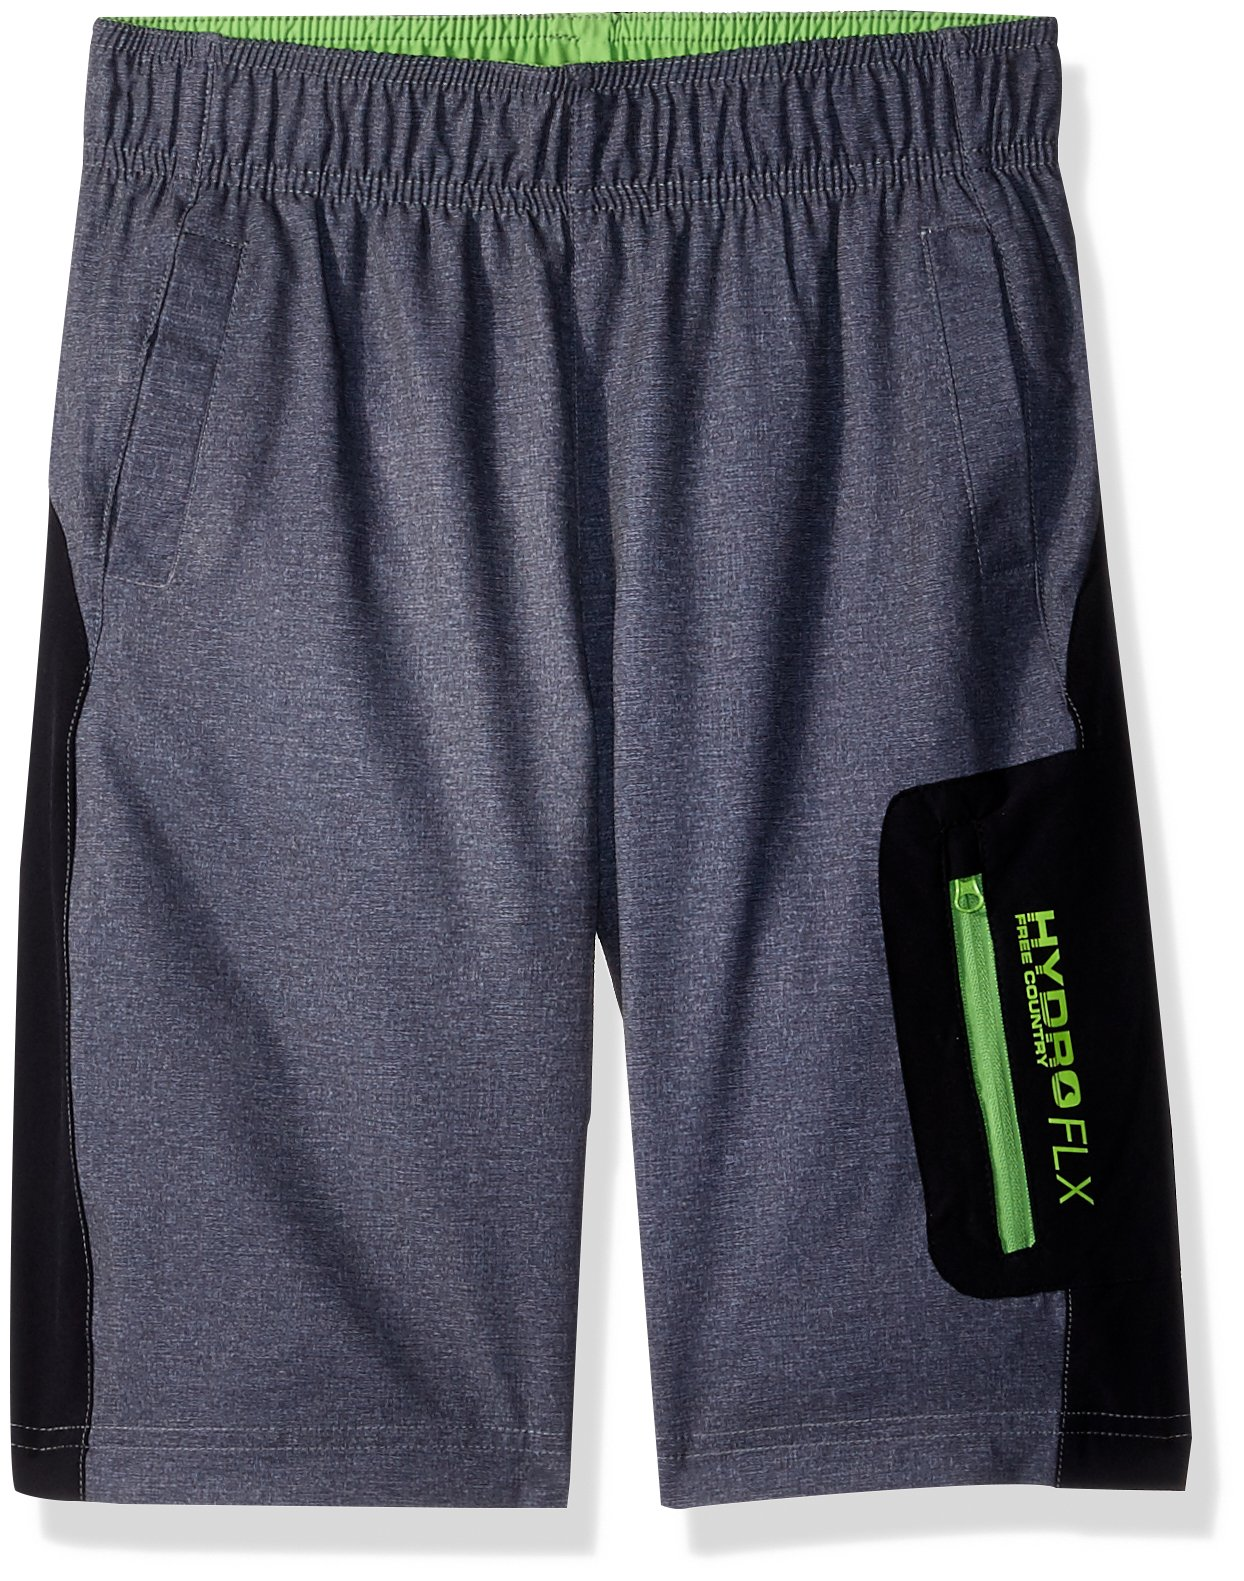 Free Country Big Boys' Textured Swim Shorts, Gray, M (10/12)